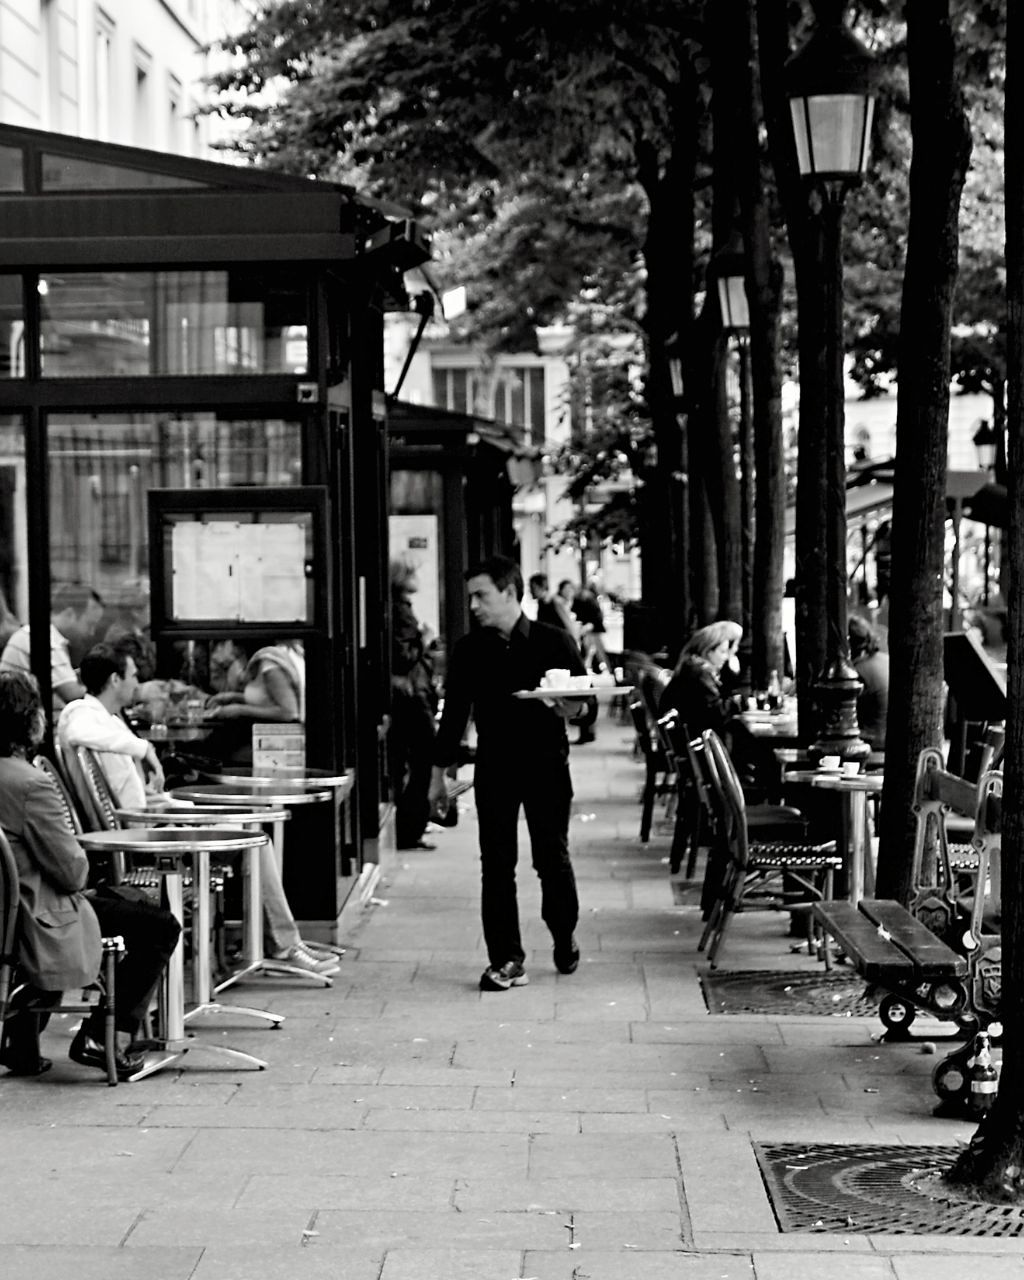 paris black and white photography - dinner is served - french cafe